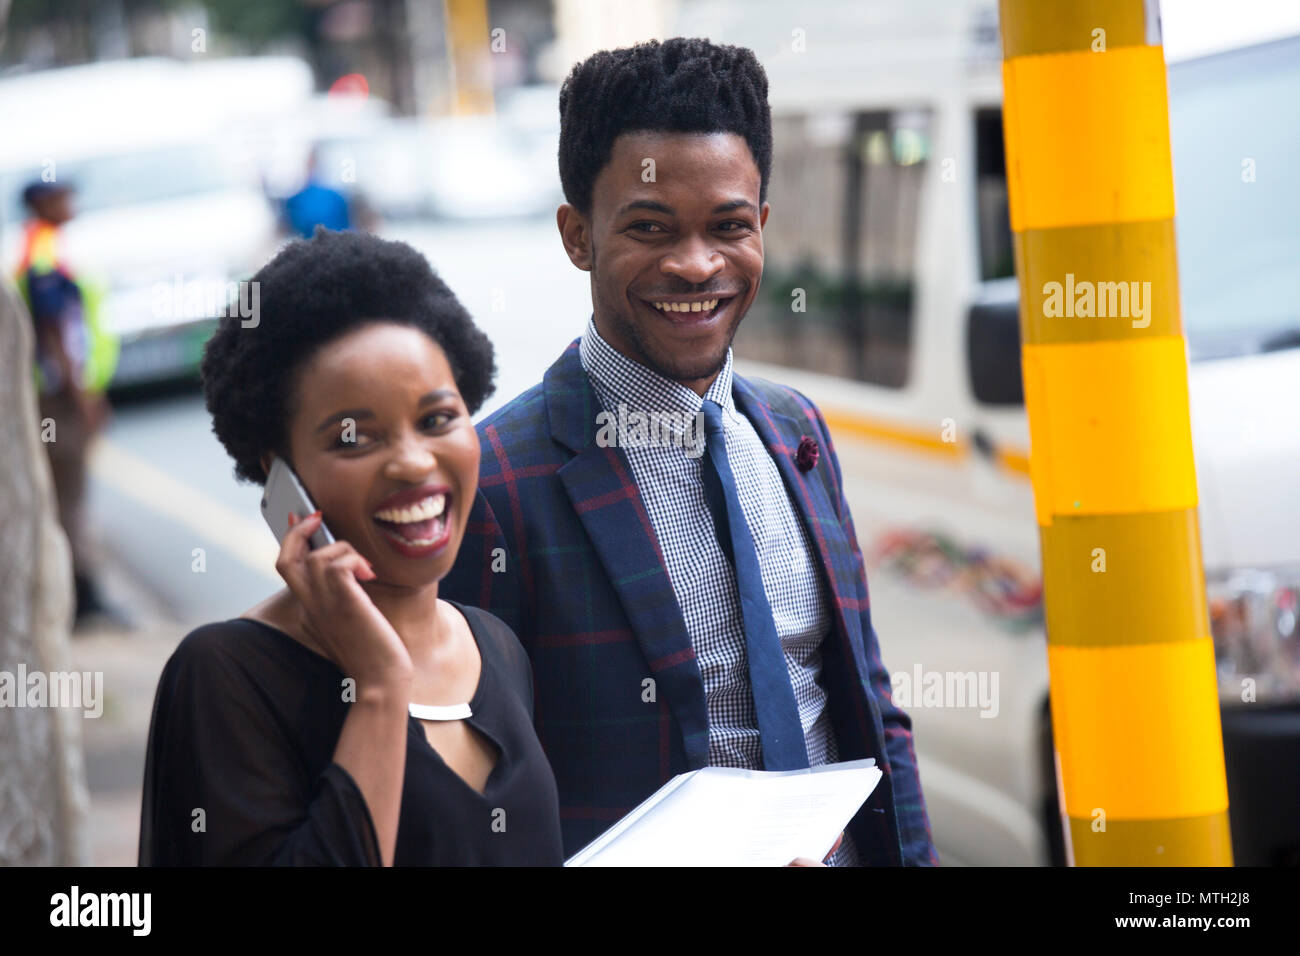 Business man and woman waiting at traffic light - Stock Image